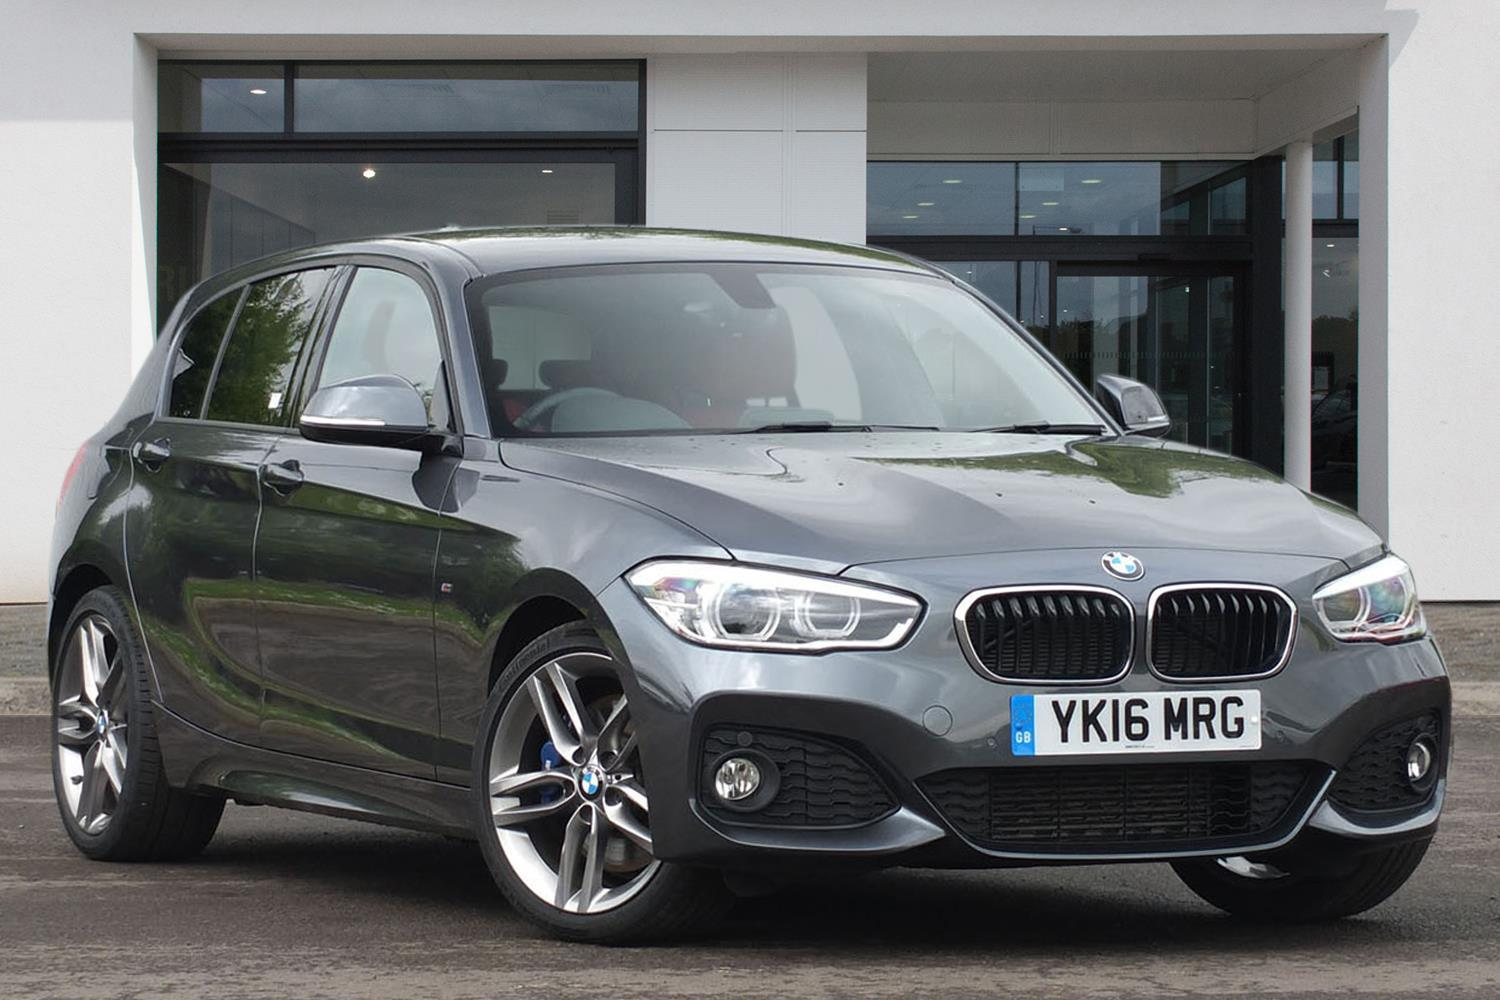 BMW 1 Series 5-door Sports Hatch YK16MRG - Image 4